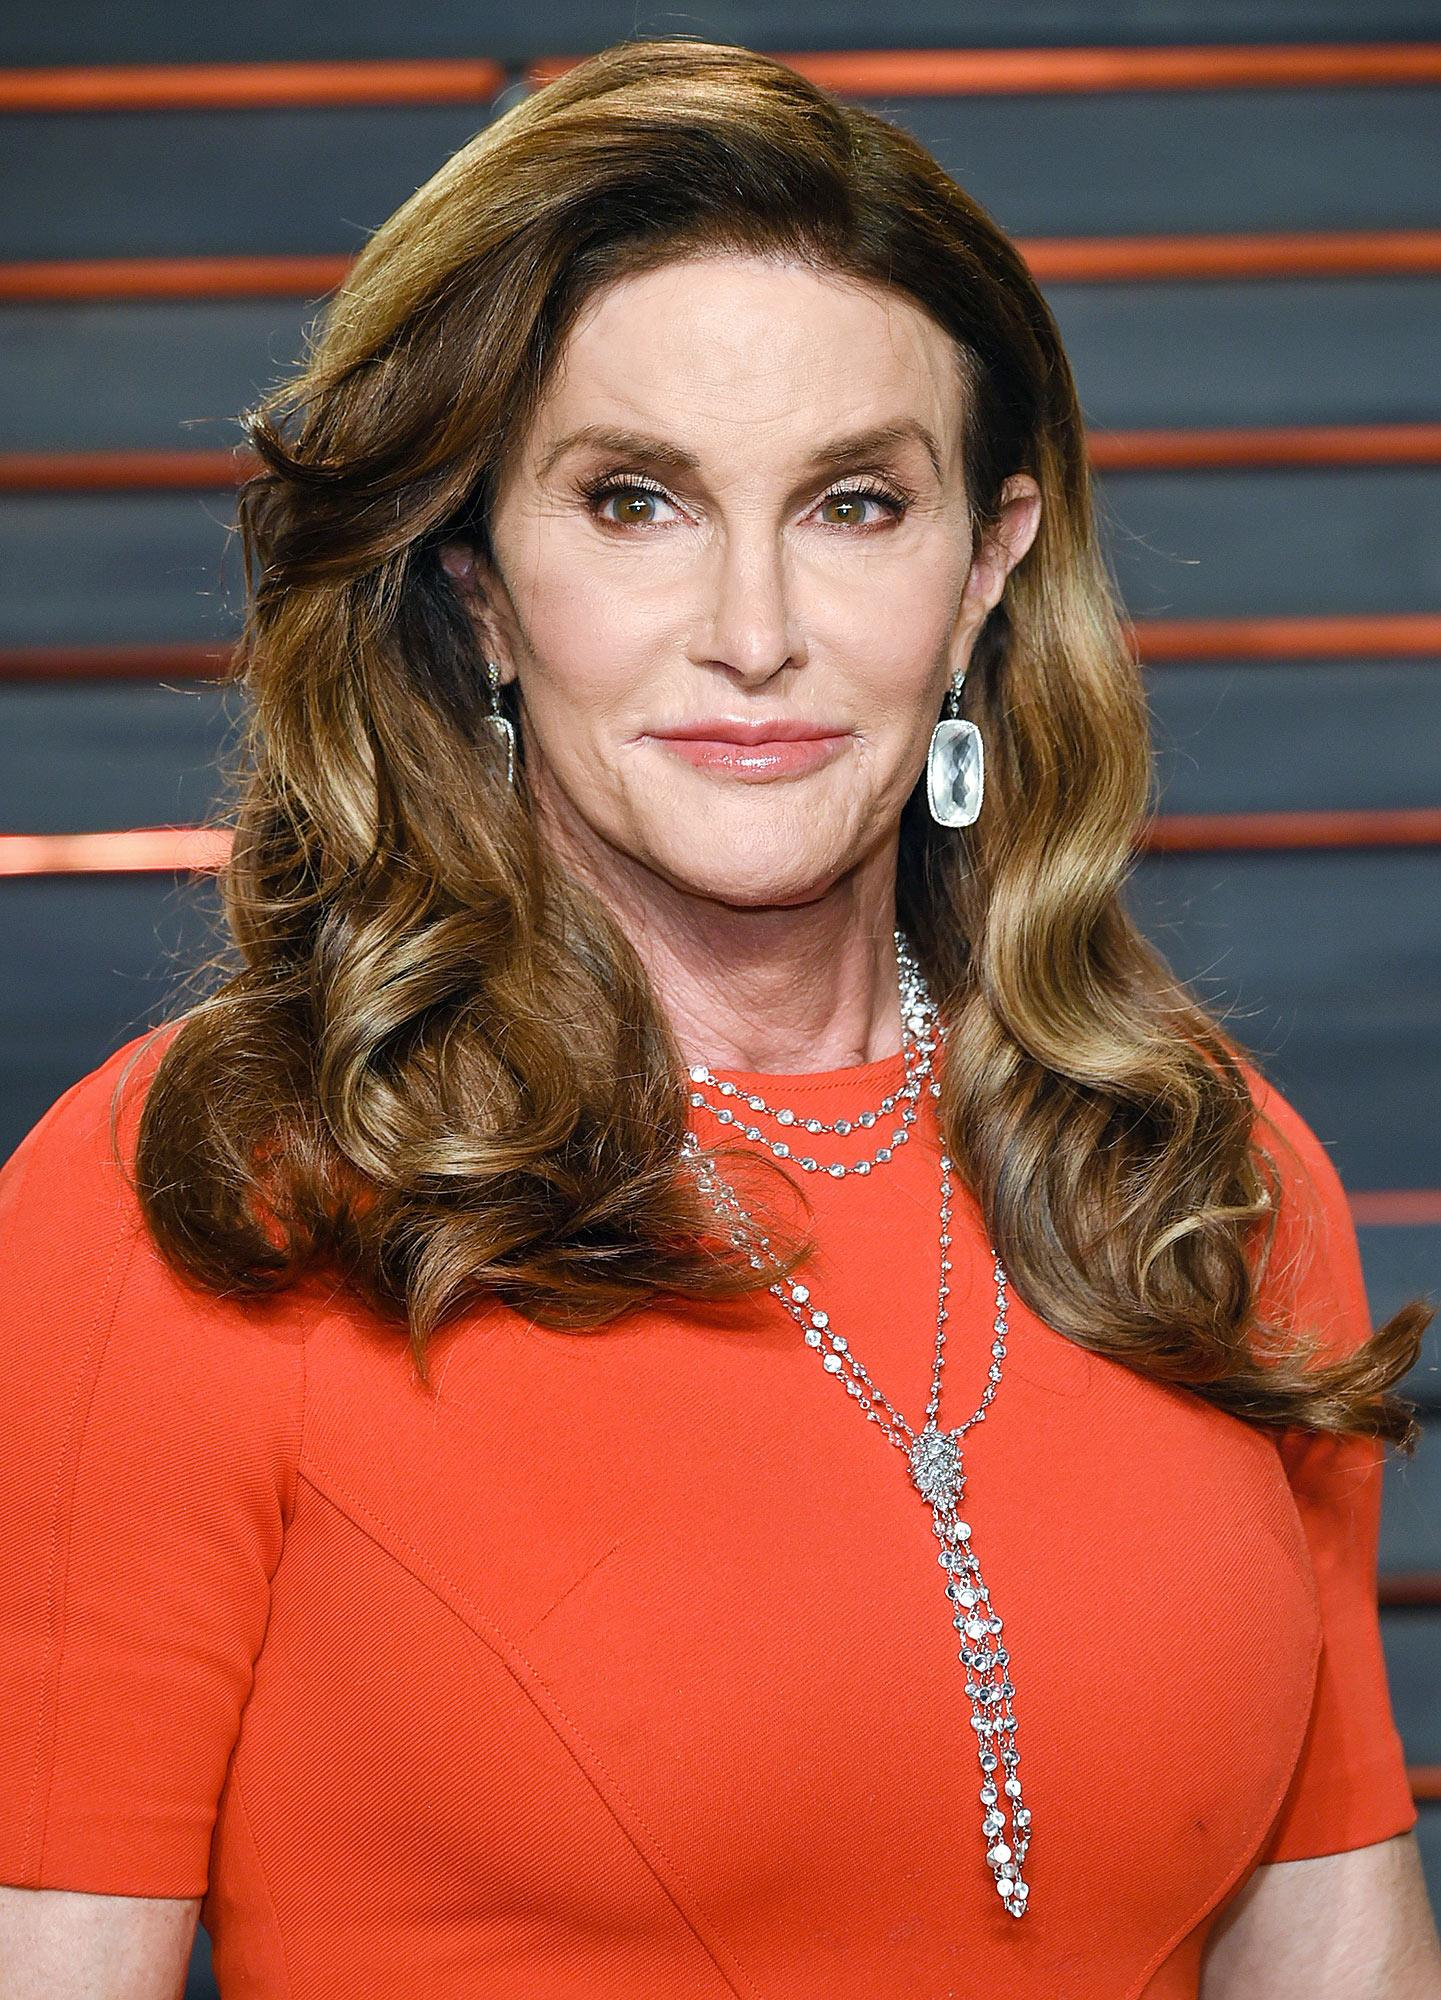 Caitlyn Jenner photographed in her Malibu home If I was lying on my deathbed and I had kept this secret and never ever did anything about it I would be lying